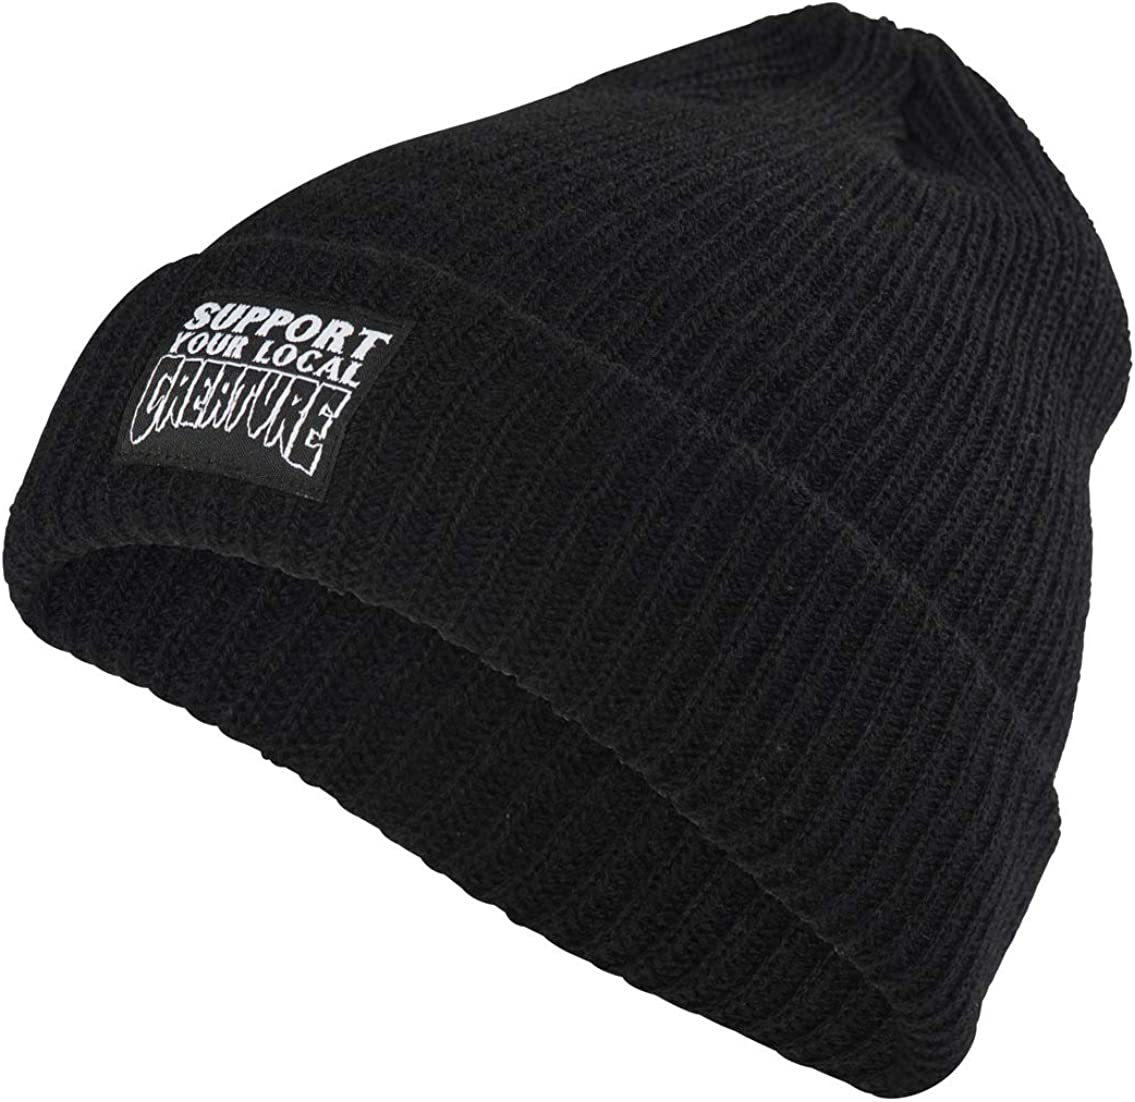 Creature Mens Support Long Shoreman Beanie Hat